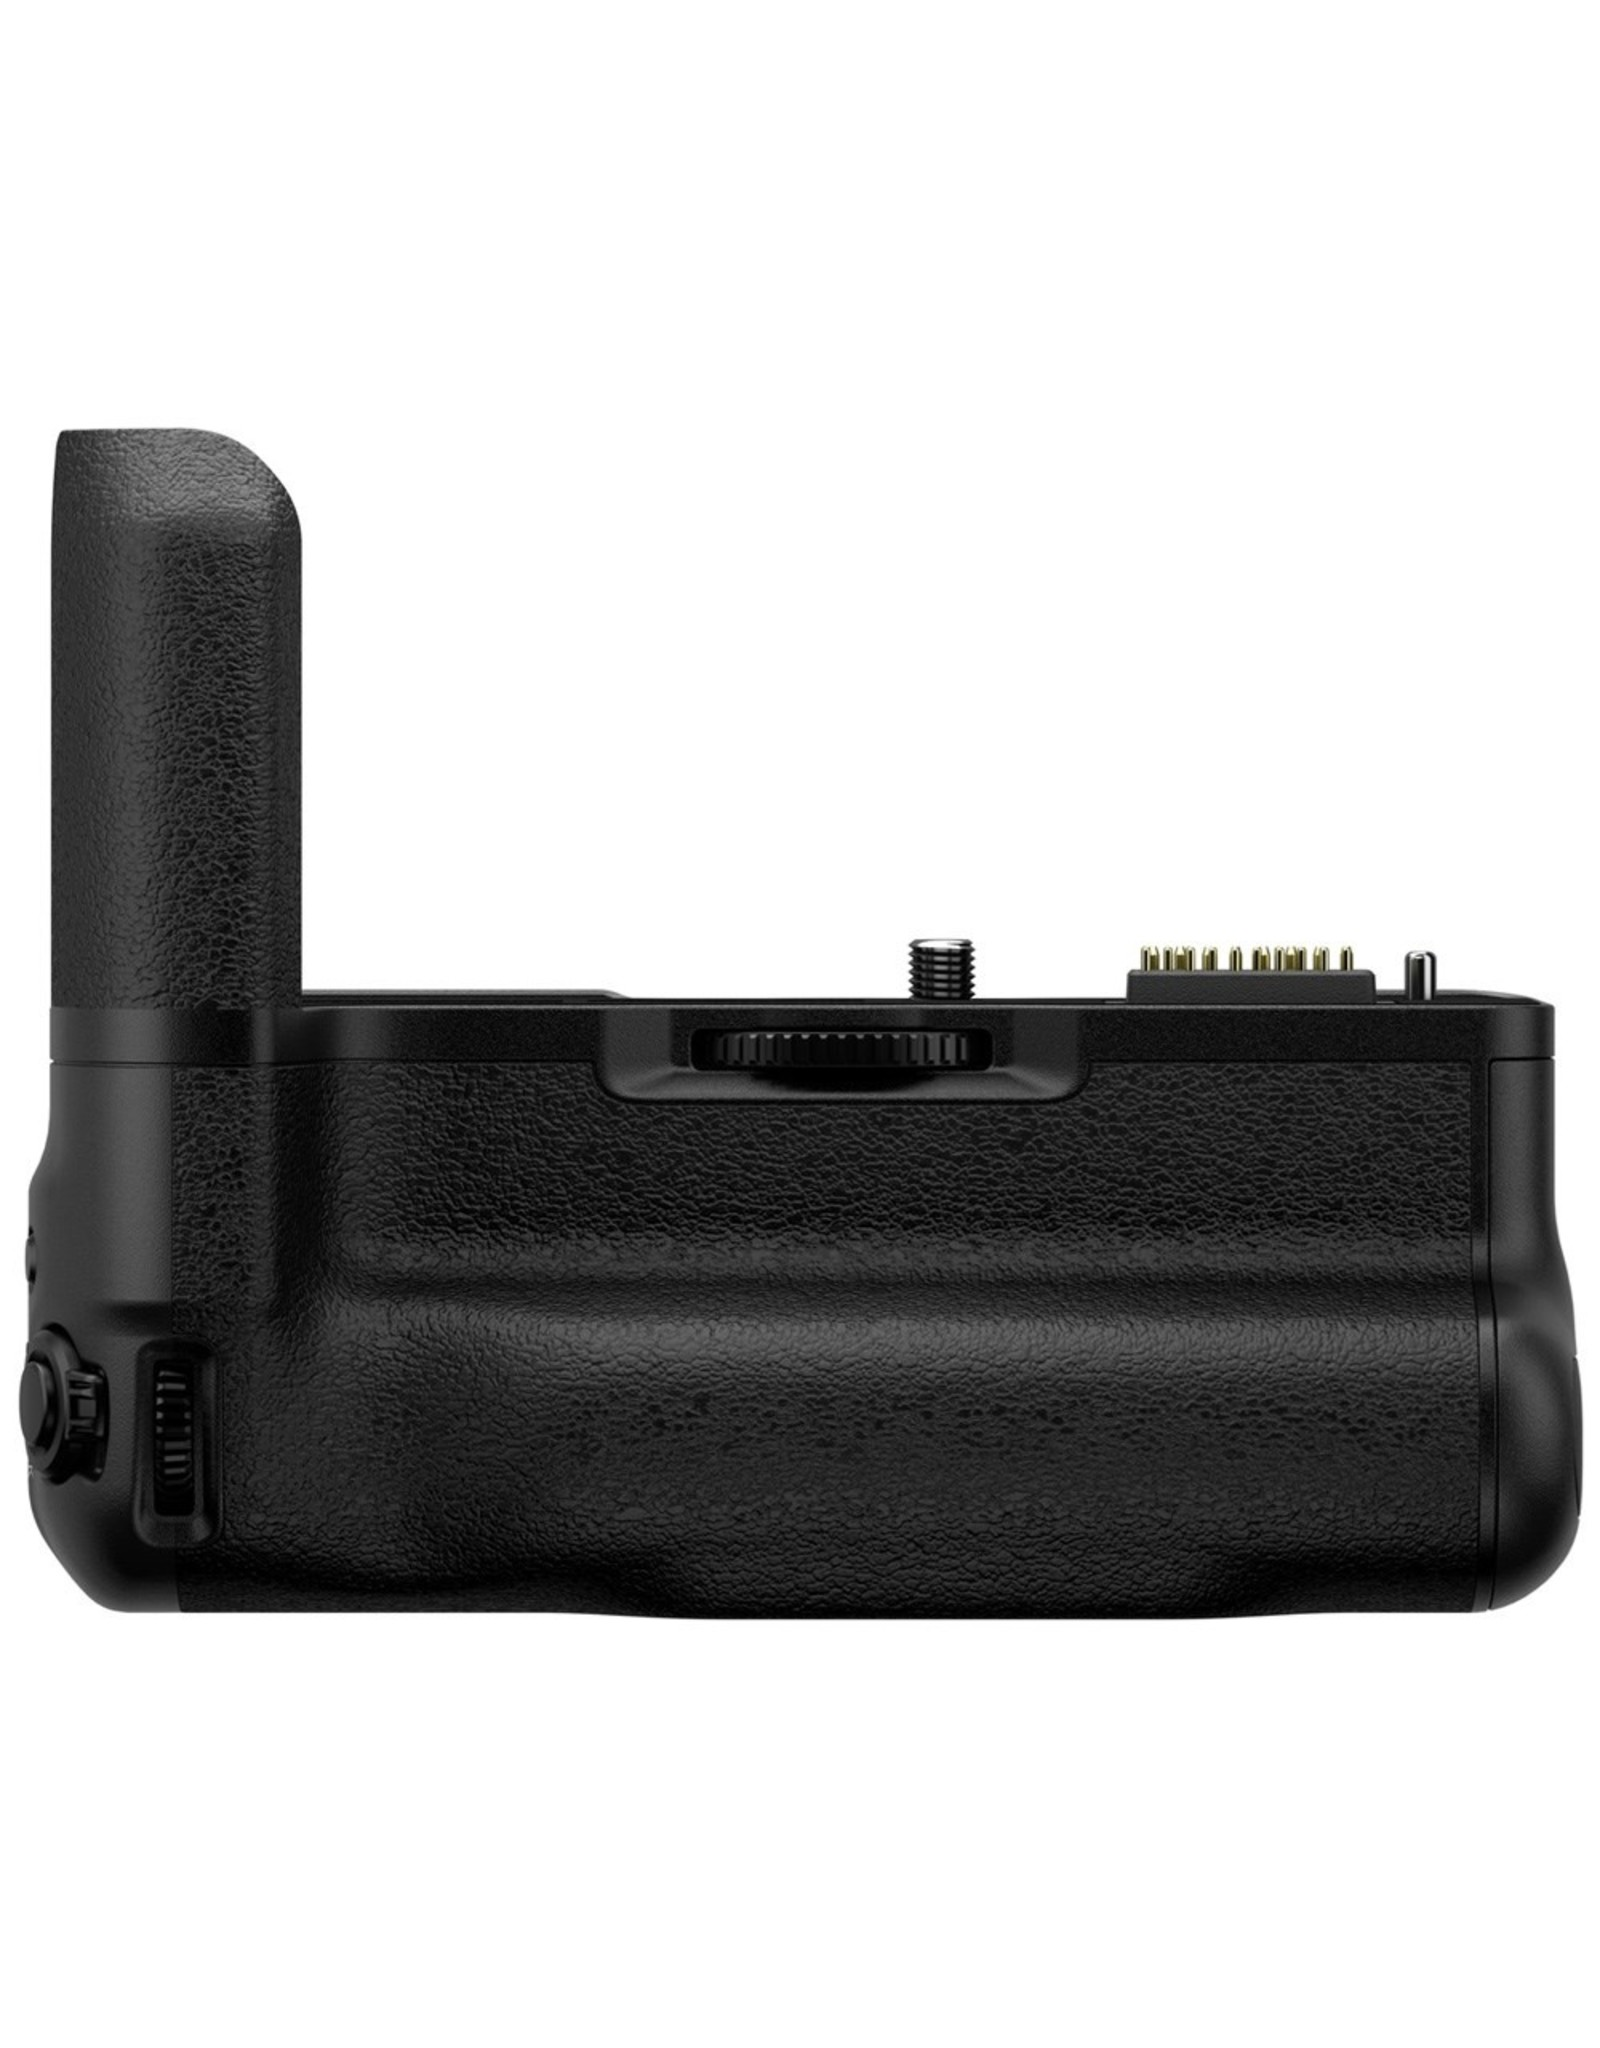 Fujifilm Fujifilm VG-XT4 Vertical Battery Grip